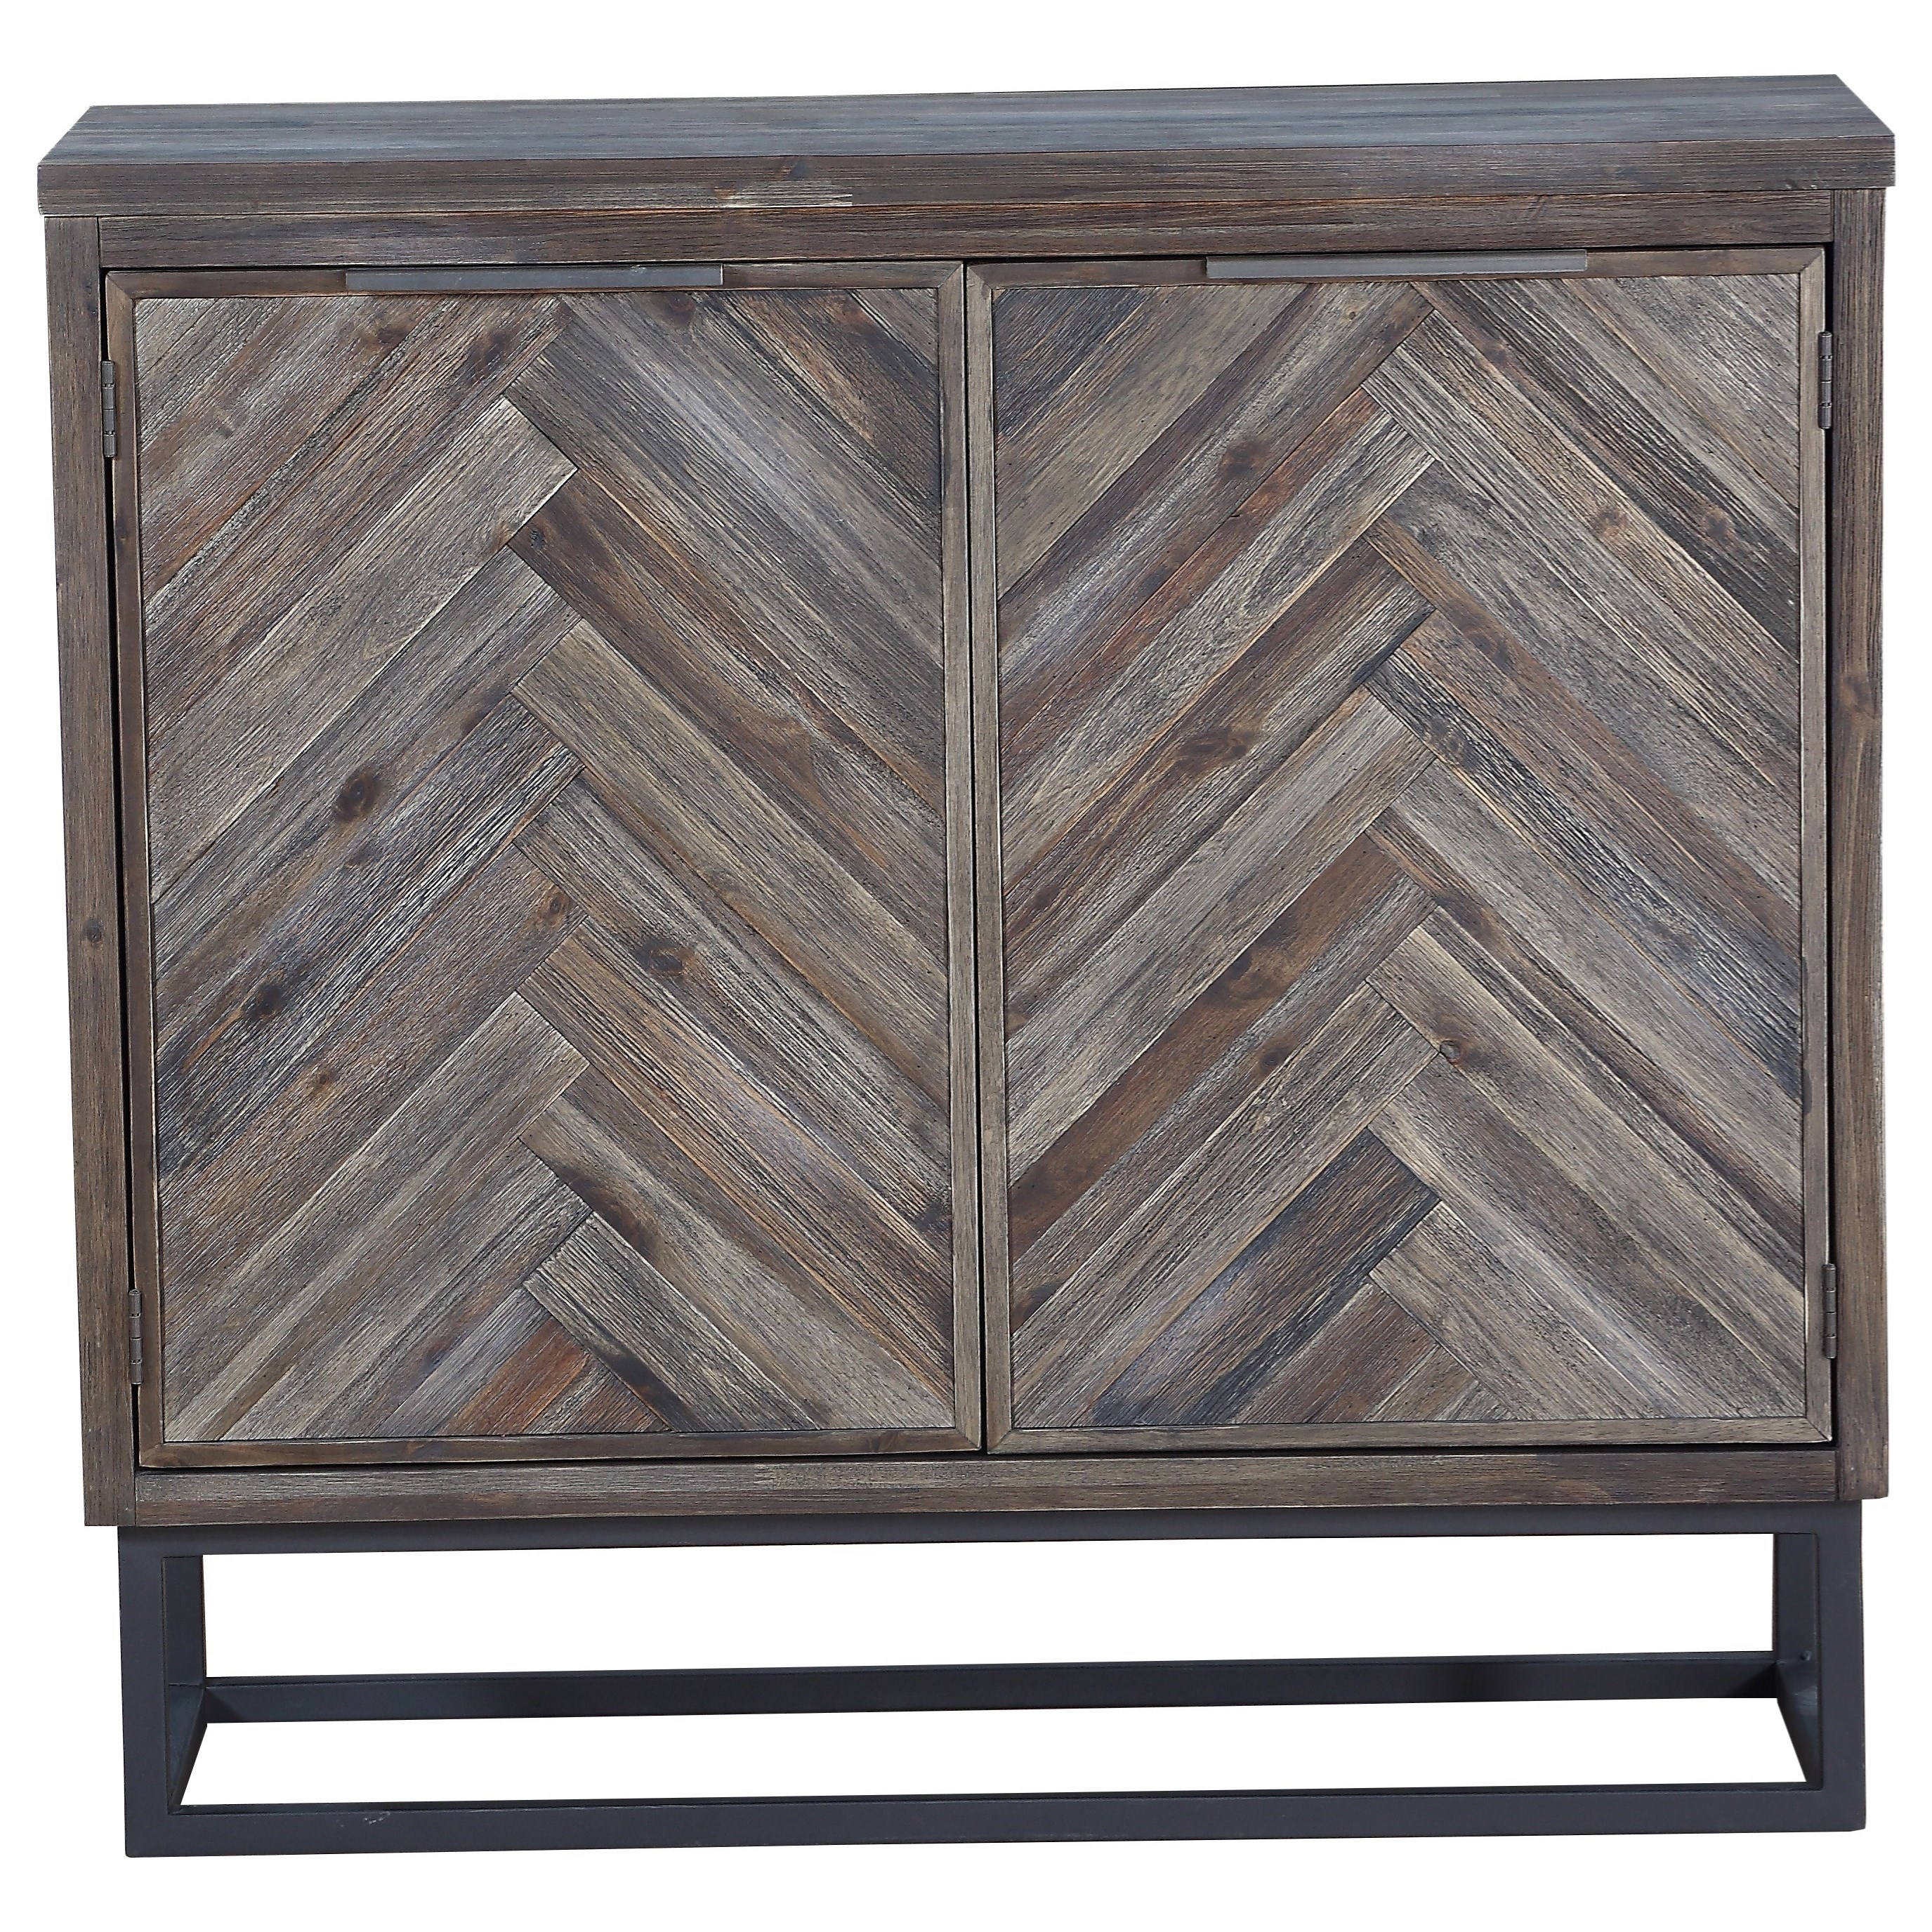 Aspen Court Two Door Cabinet by Coast to Coast Imports at Furniture Fair - North Carolina